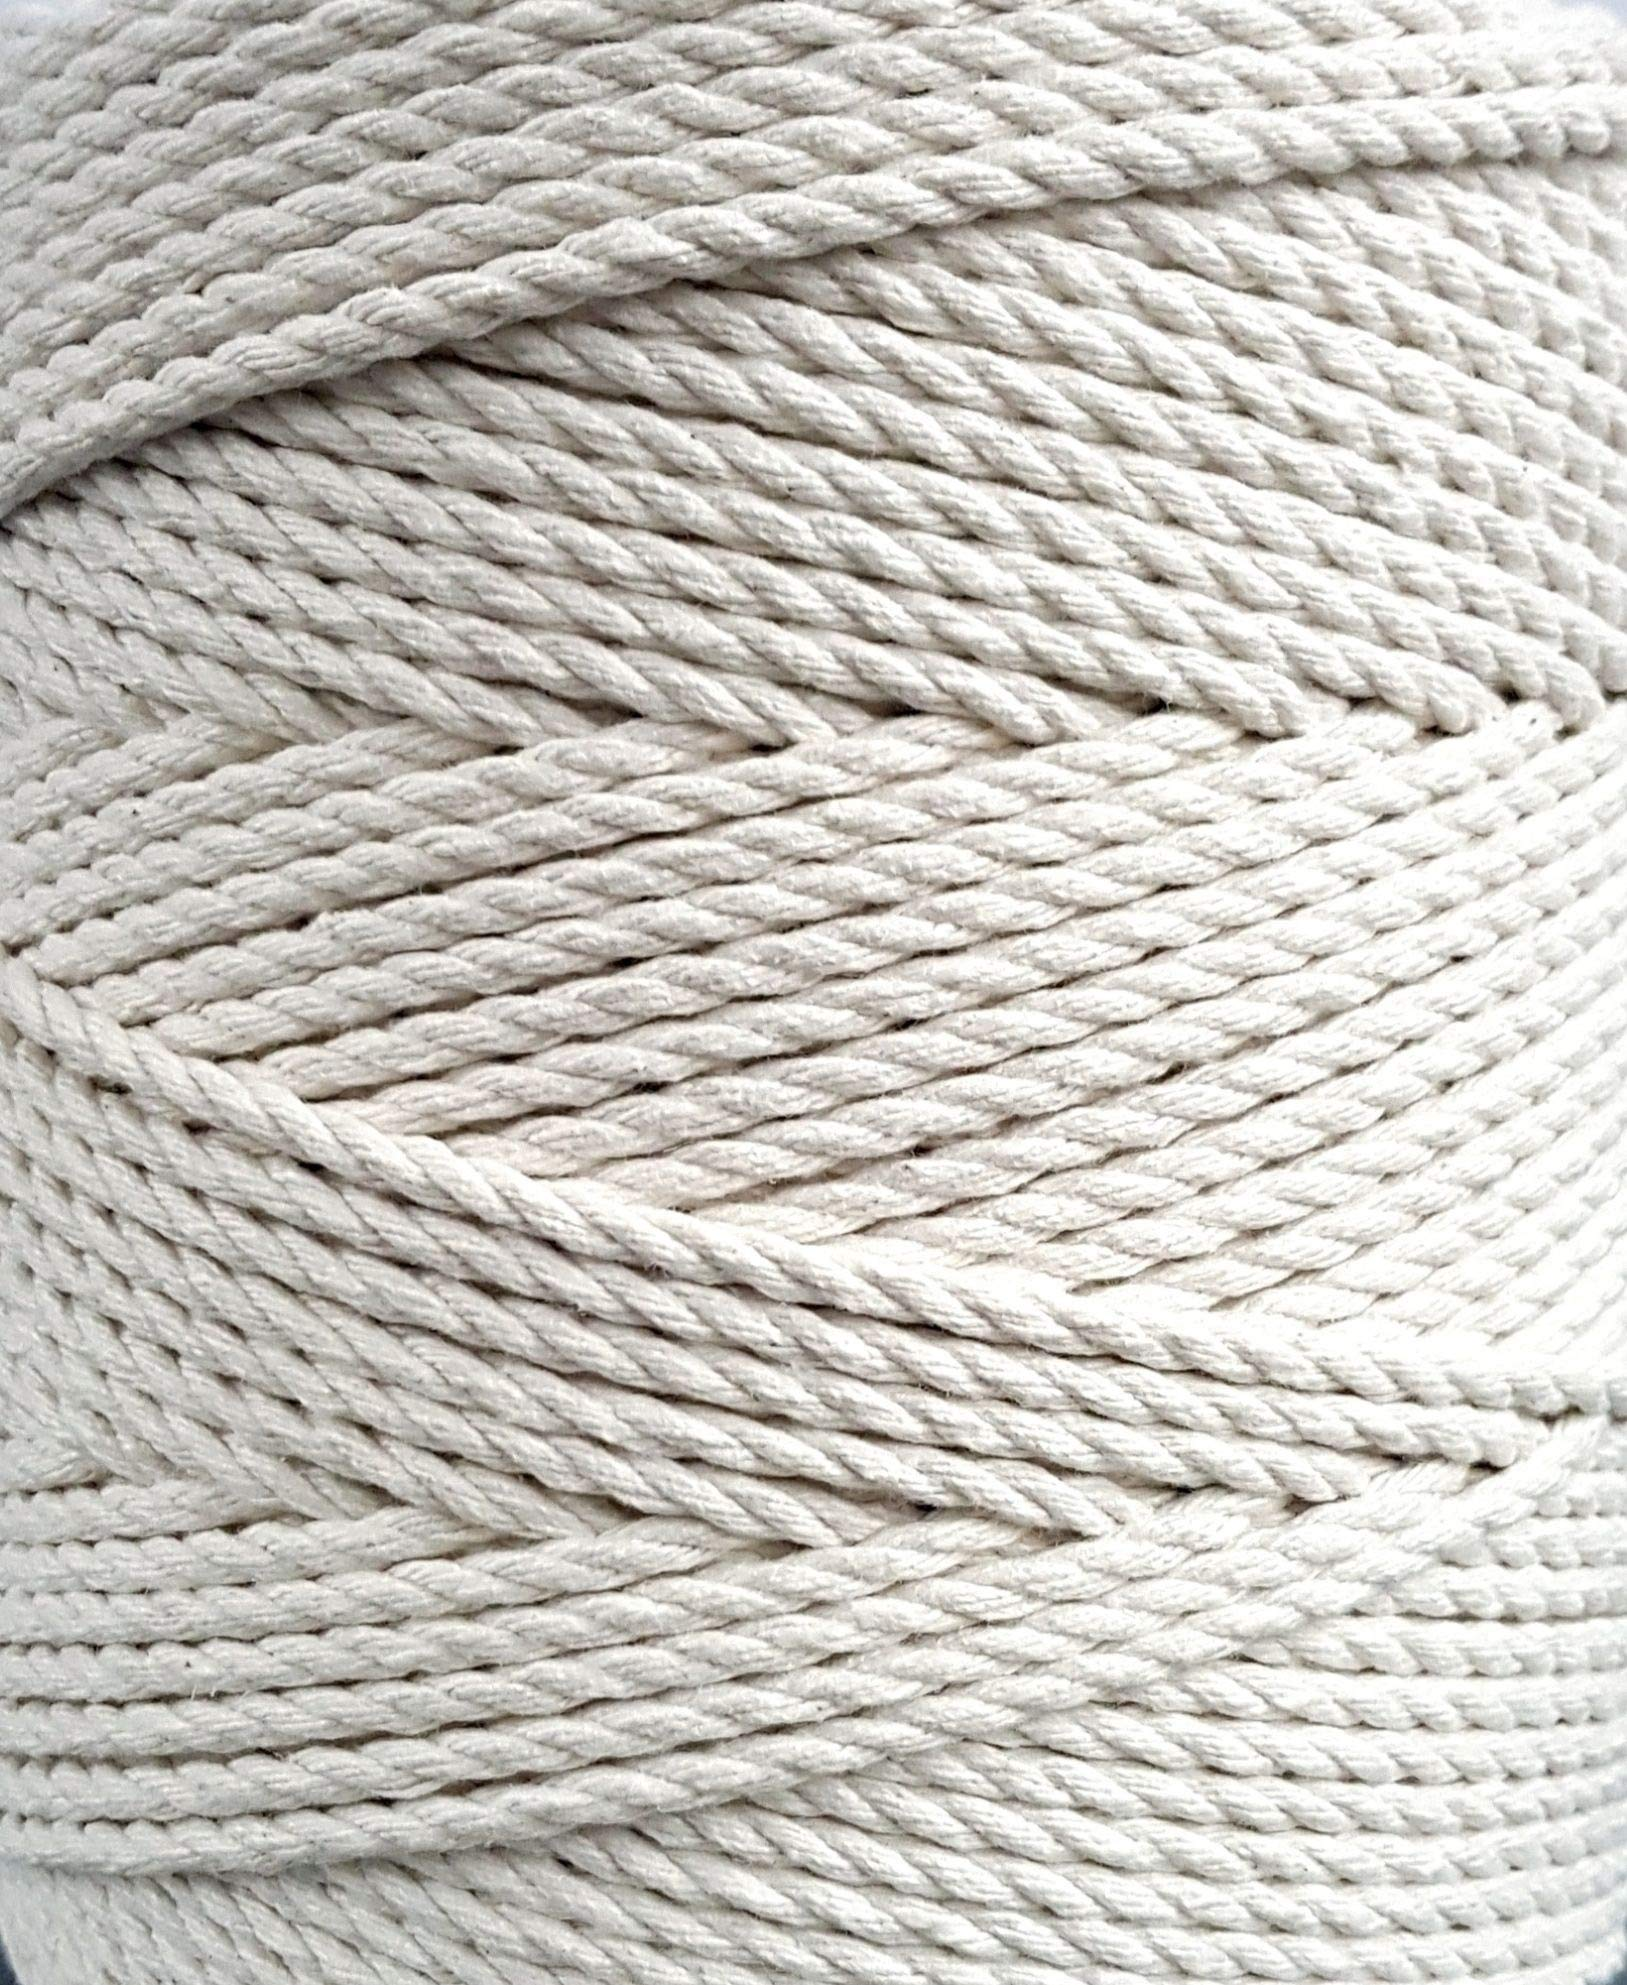 Macrame cord 4mm natural cotton cord 853 feet macrame rope 284 yd. cotton rope (4mm x 260m (about 284 yd.)) by MB Cordas (Image #4)